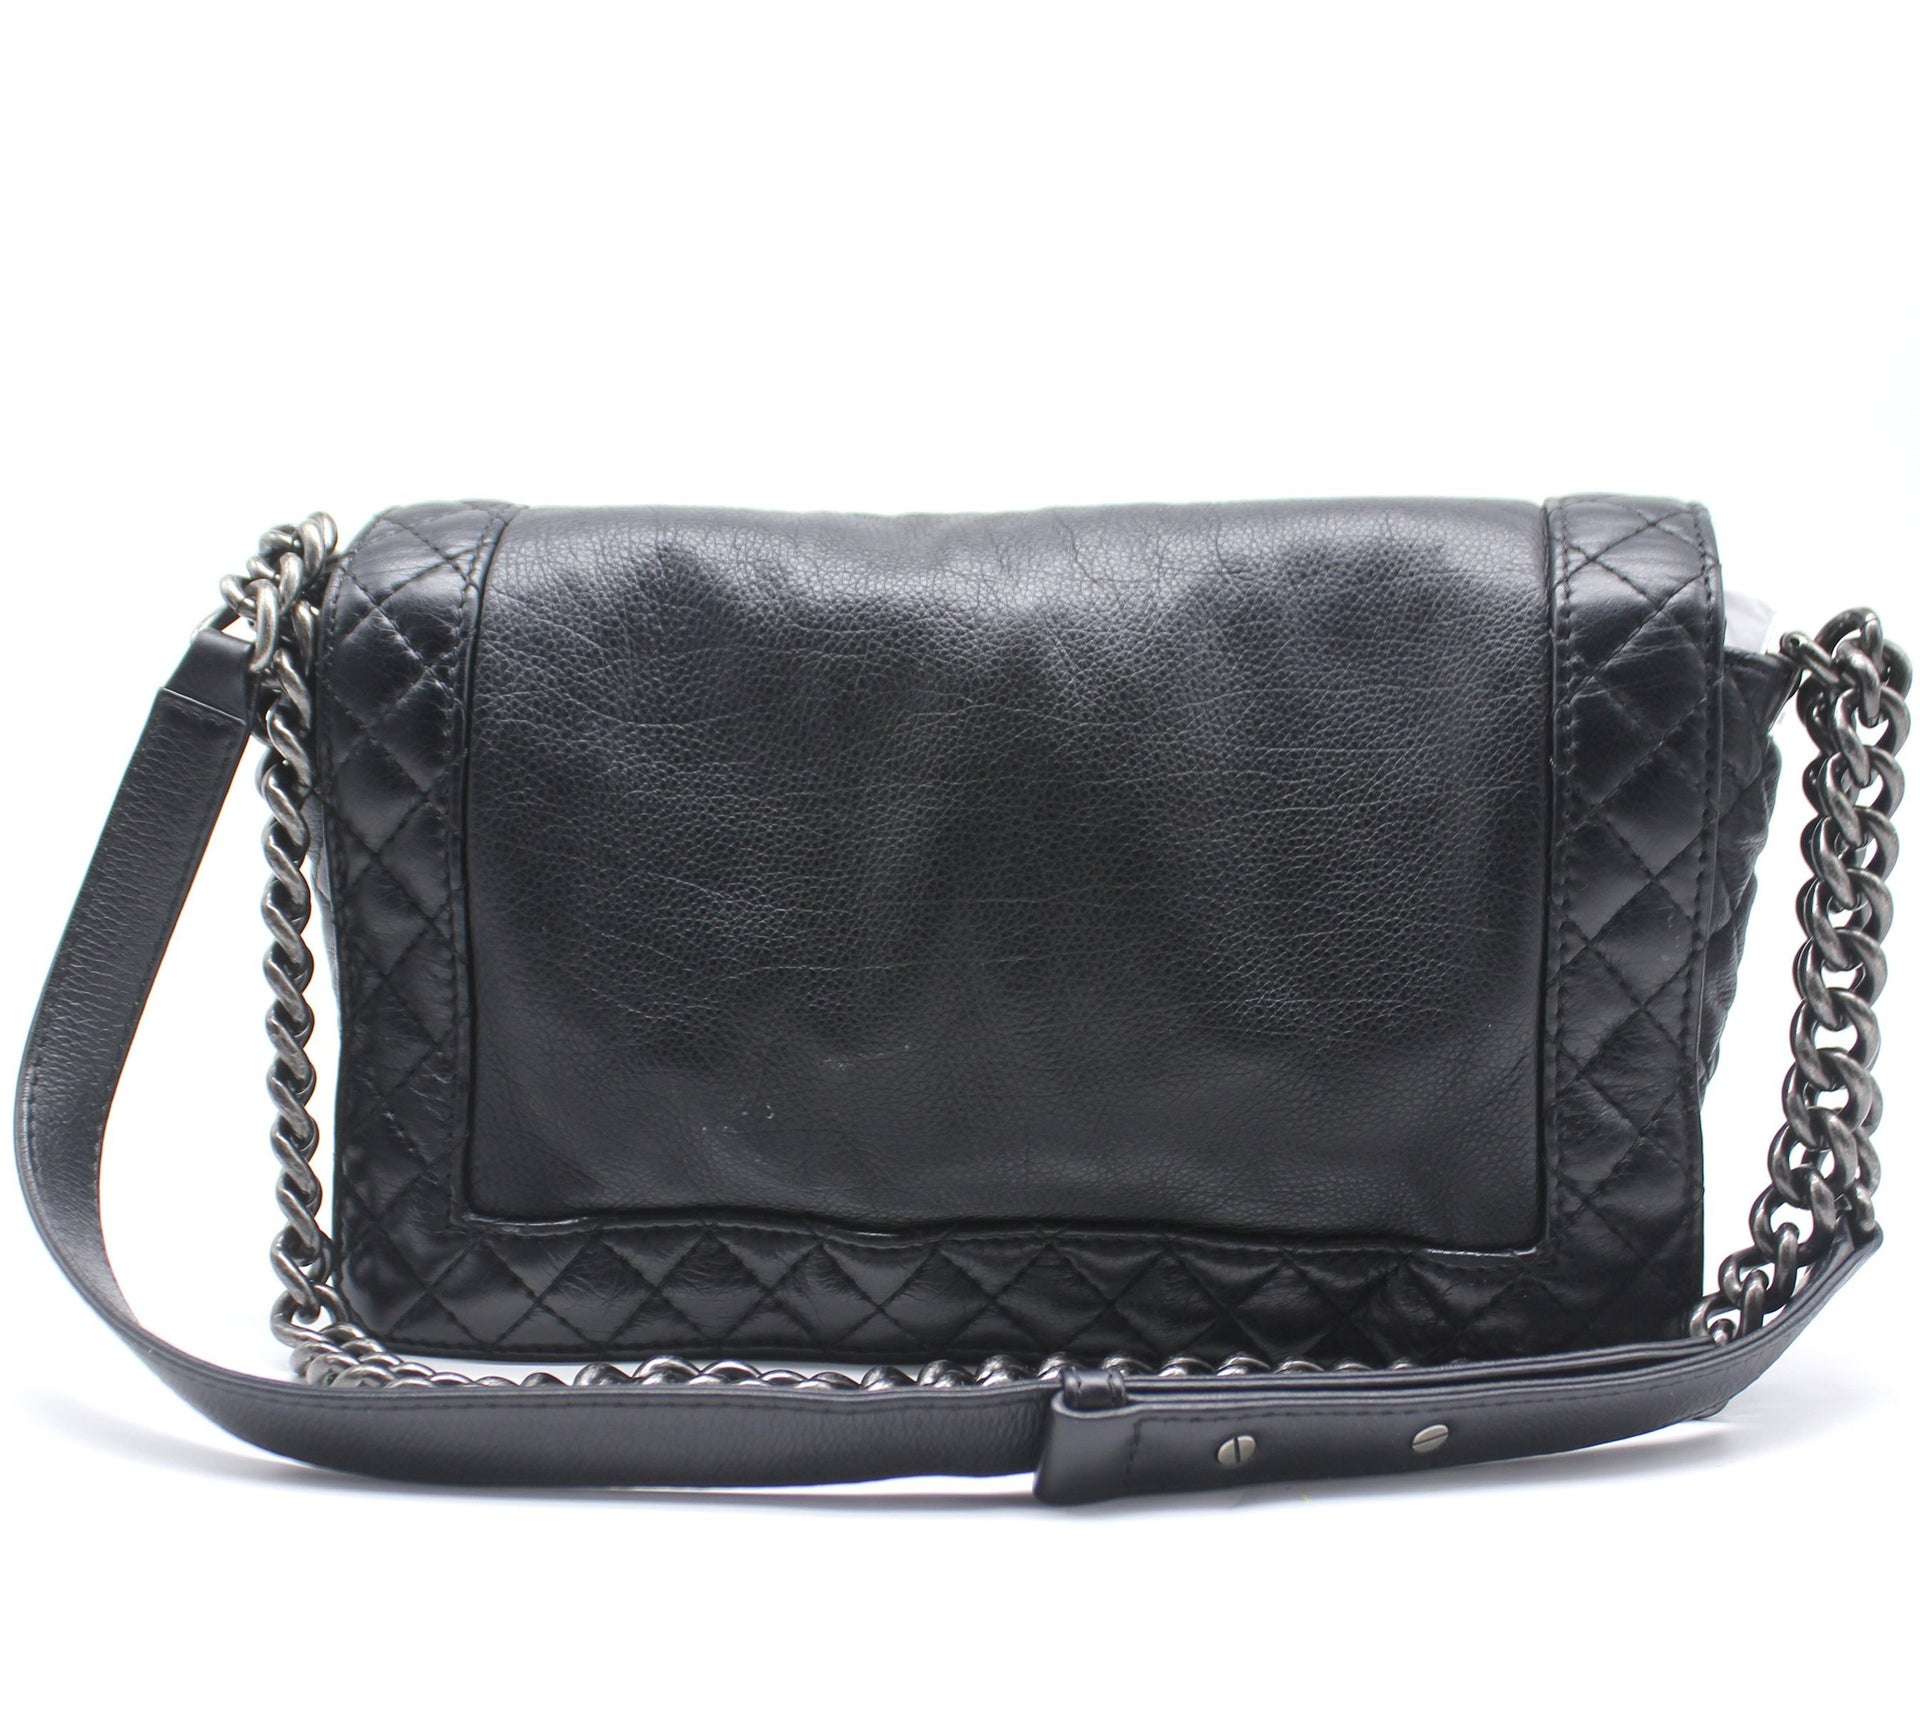 Chanel Quilted Black Calfskin Le boy Reverso